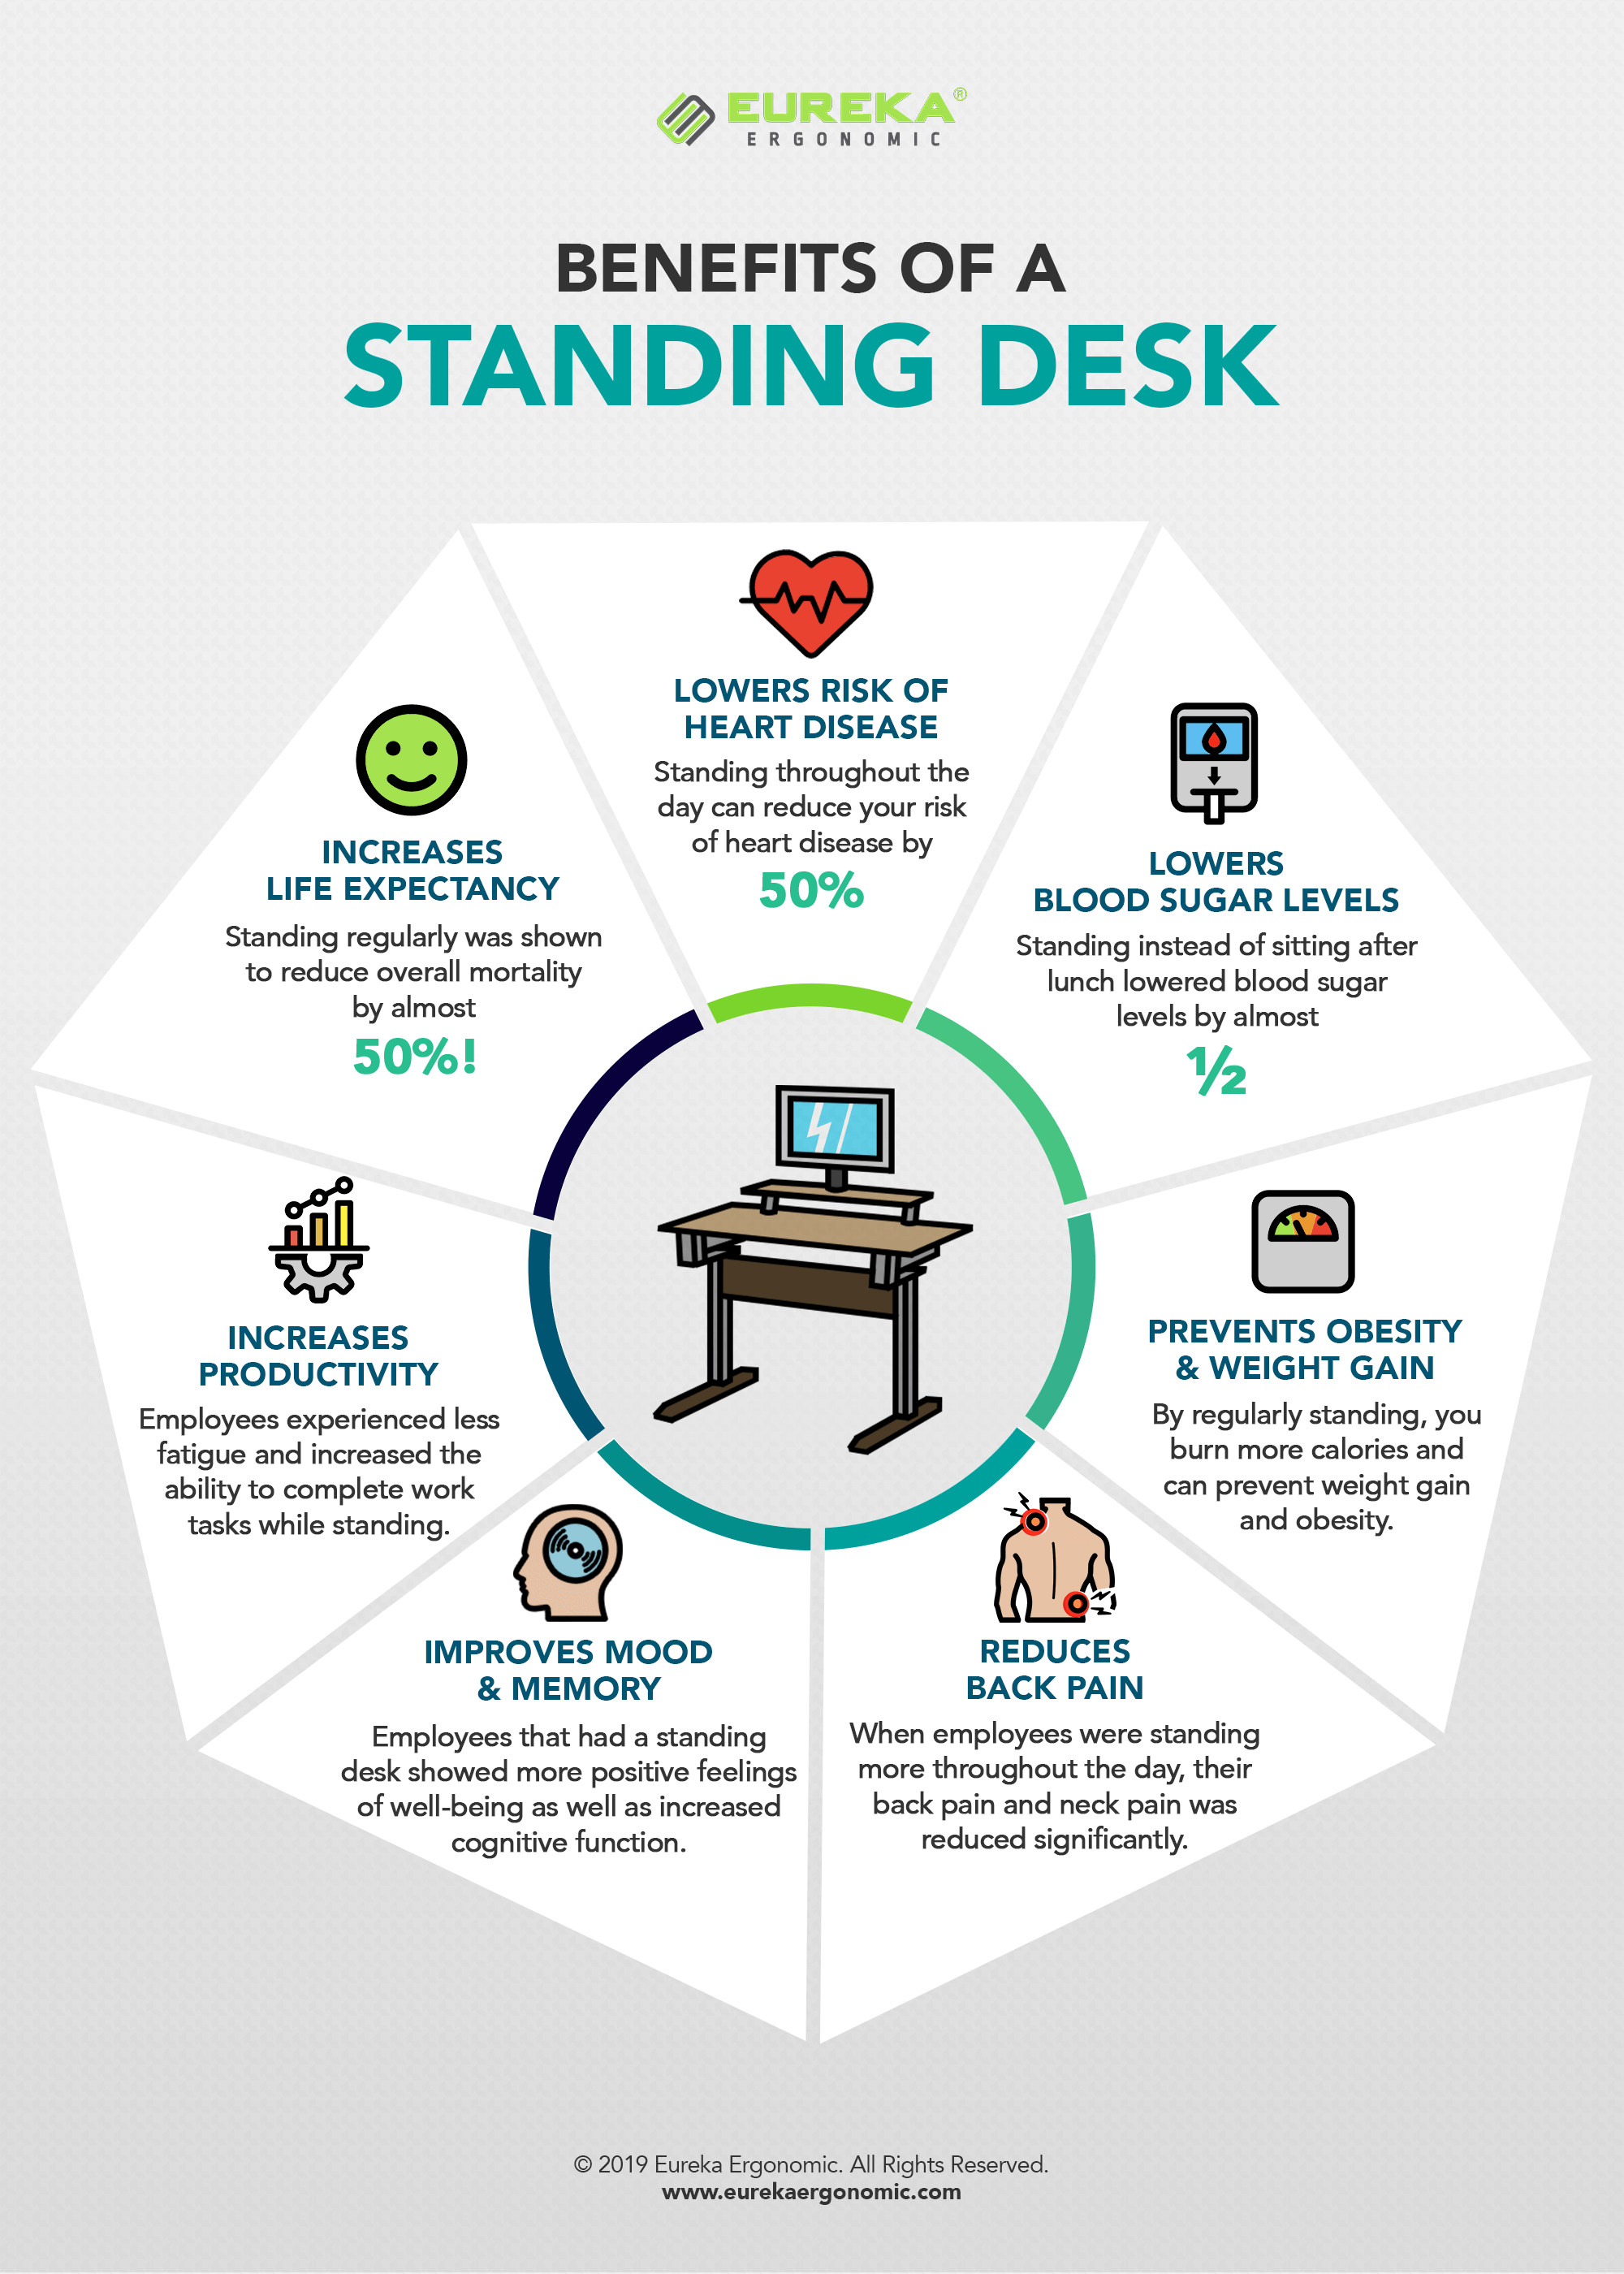 Top 7 Benefits Of A Standing Desk